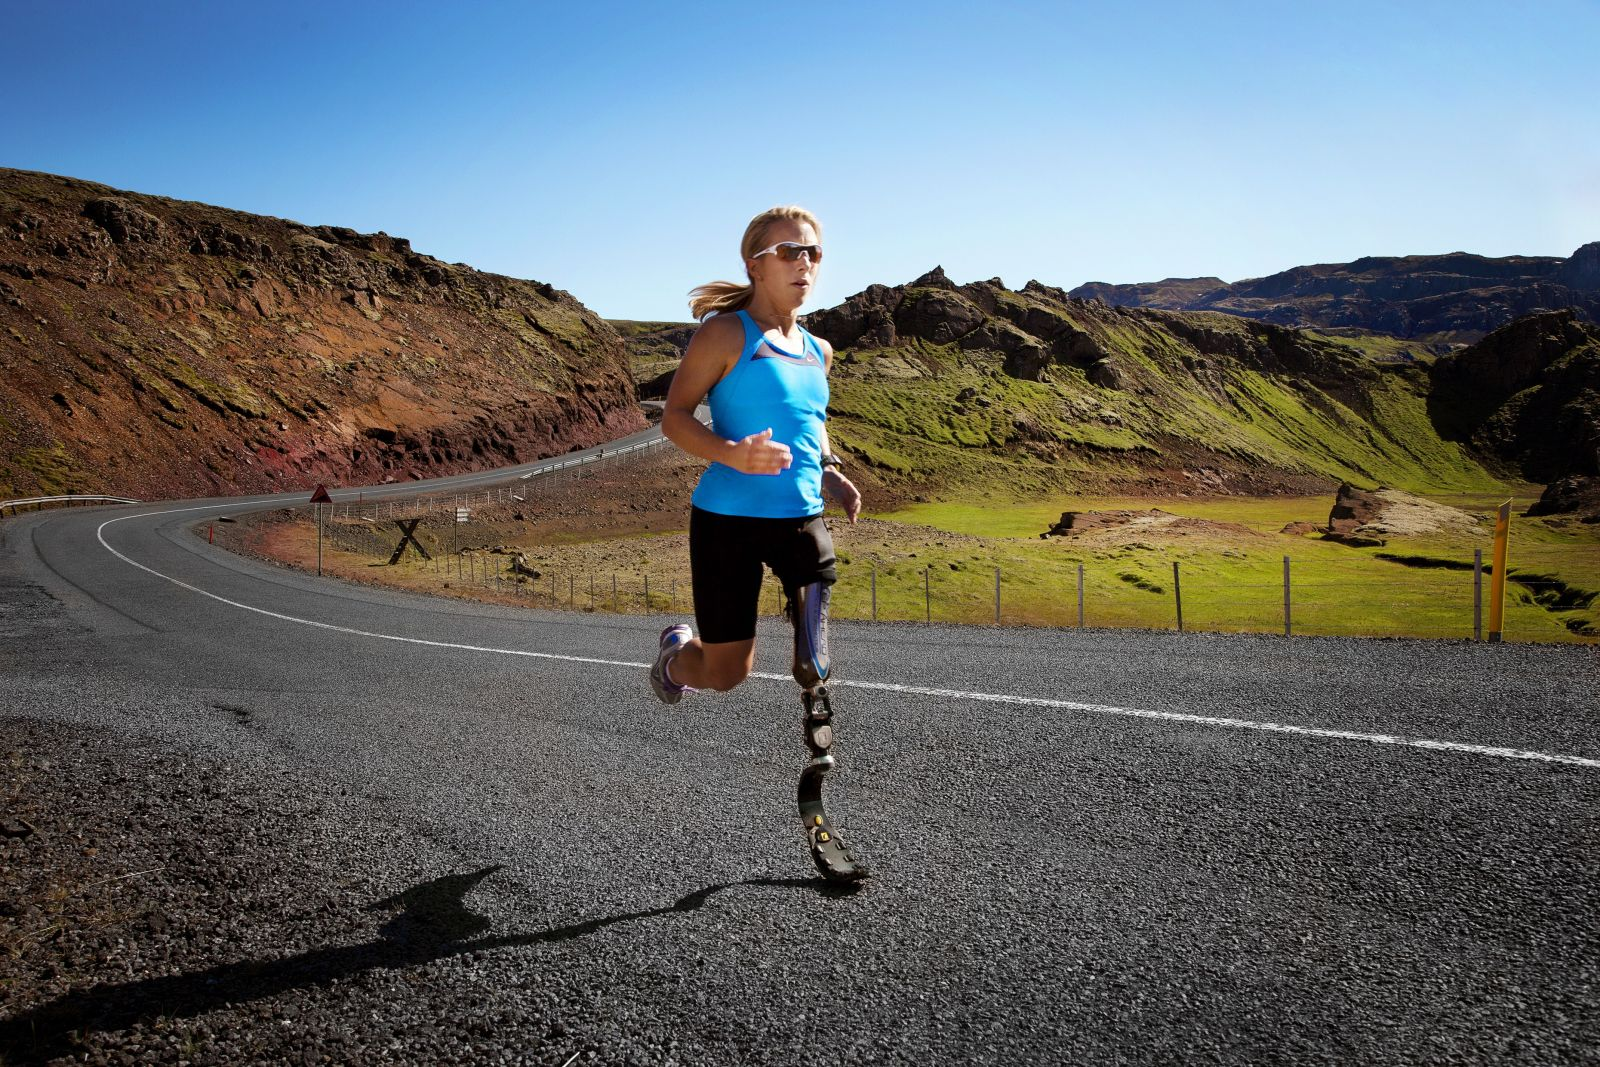 Marathon Bomb Survivors Inspire Medical Advances